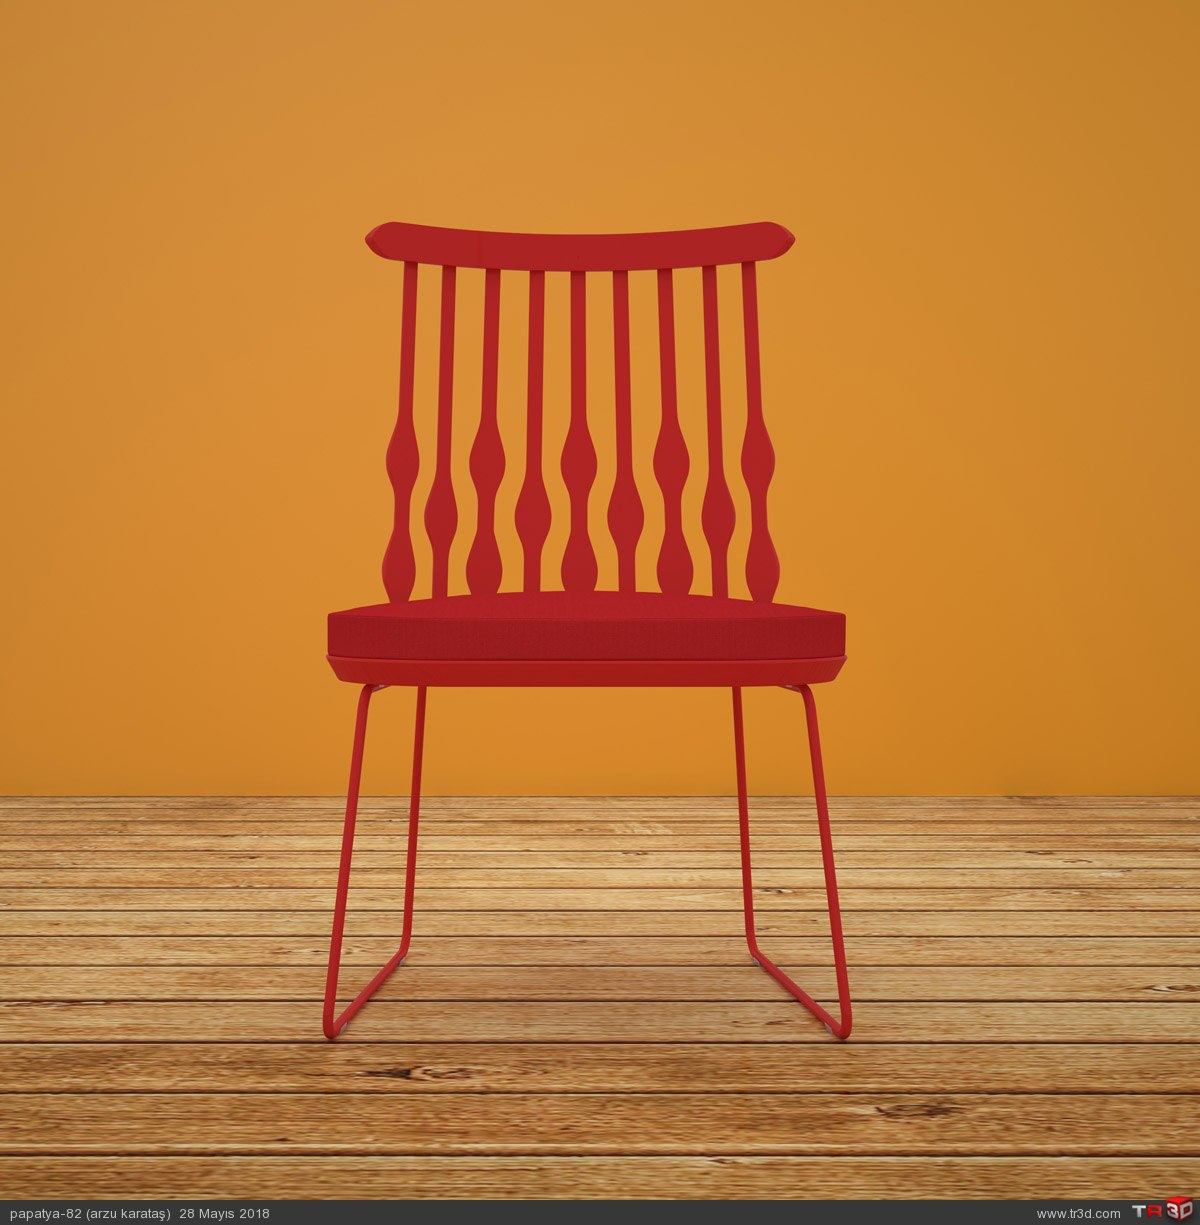 design by patricia urquiola nub chair-2 1